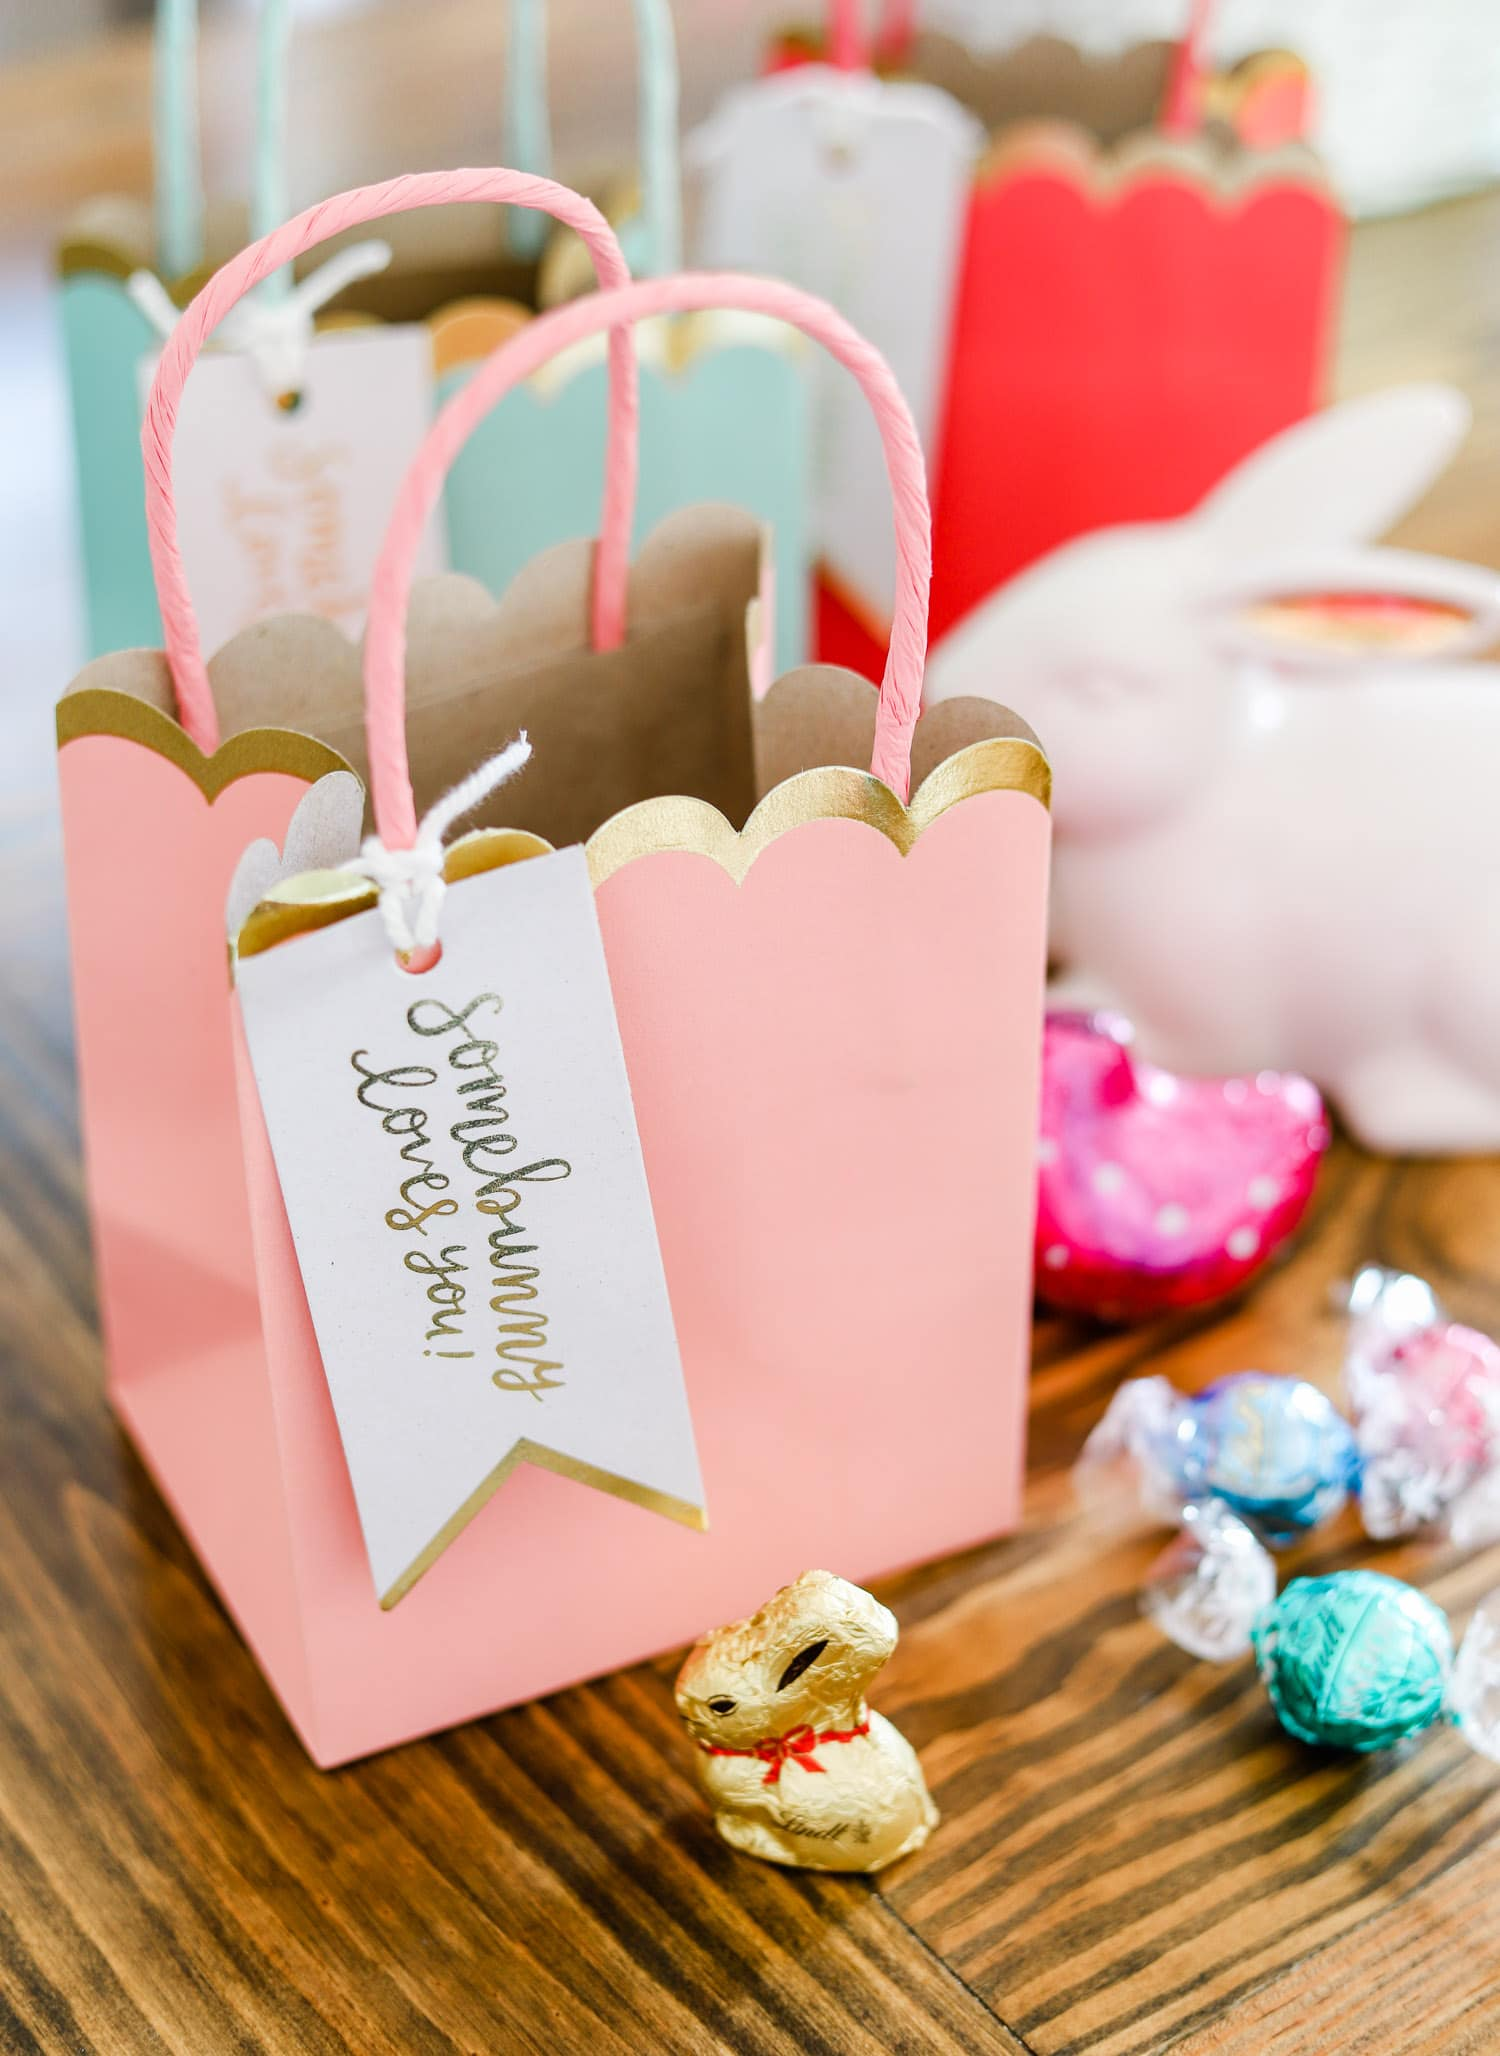 Cute Easter Basket Ideas + Party Favors | Ashley Brooke Nicholas